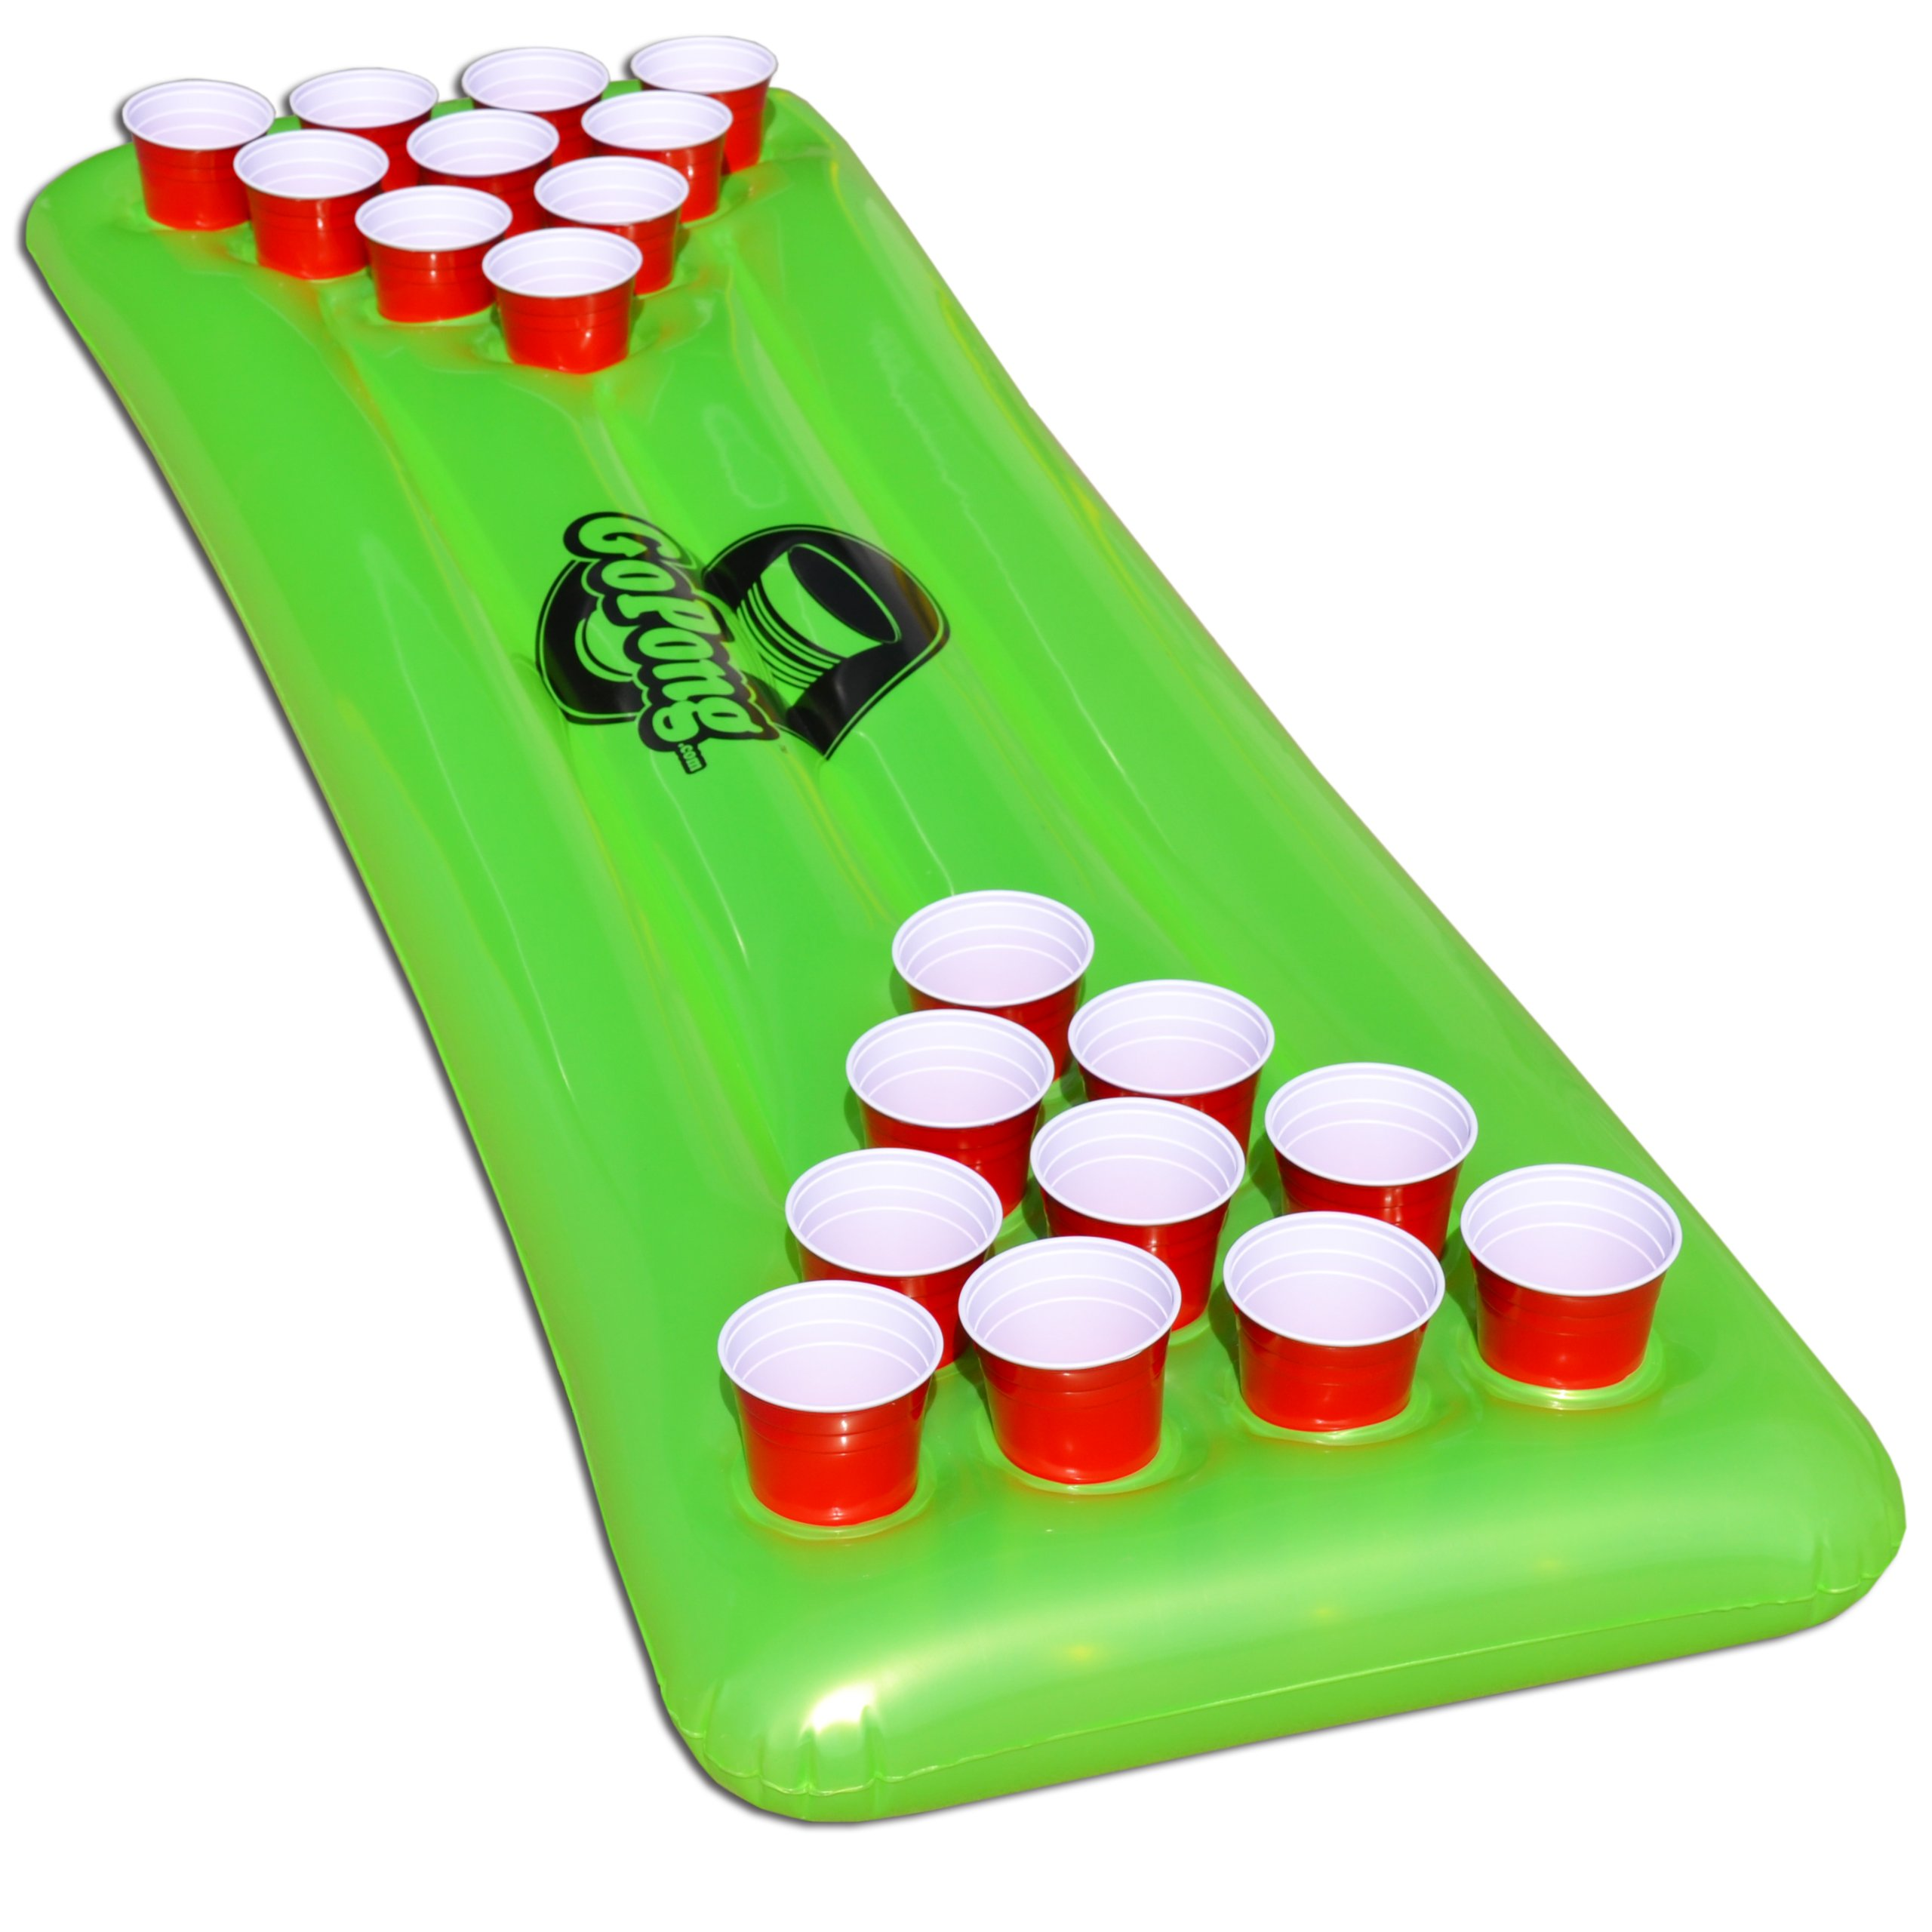 GoPong Pool Pong Table, Inflatable Floating Beer Pong Table, Includes 3 Pong Balls by GoPong